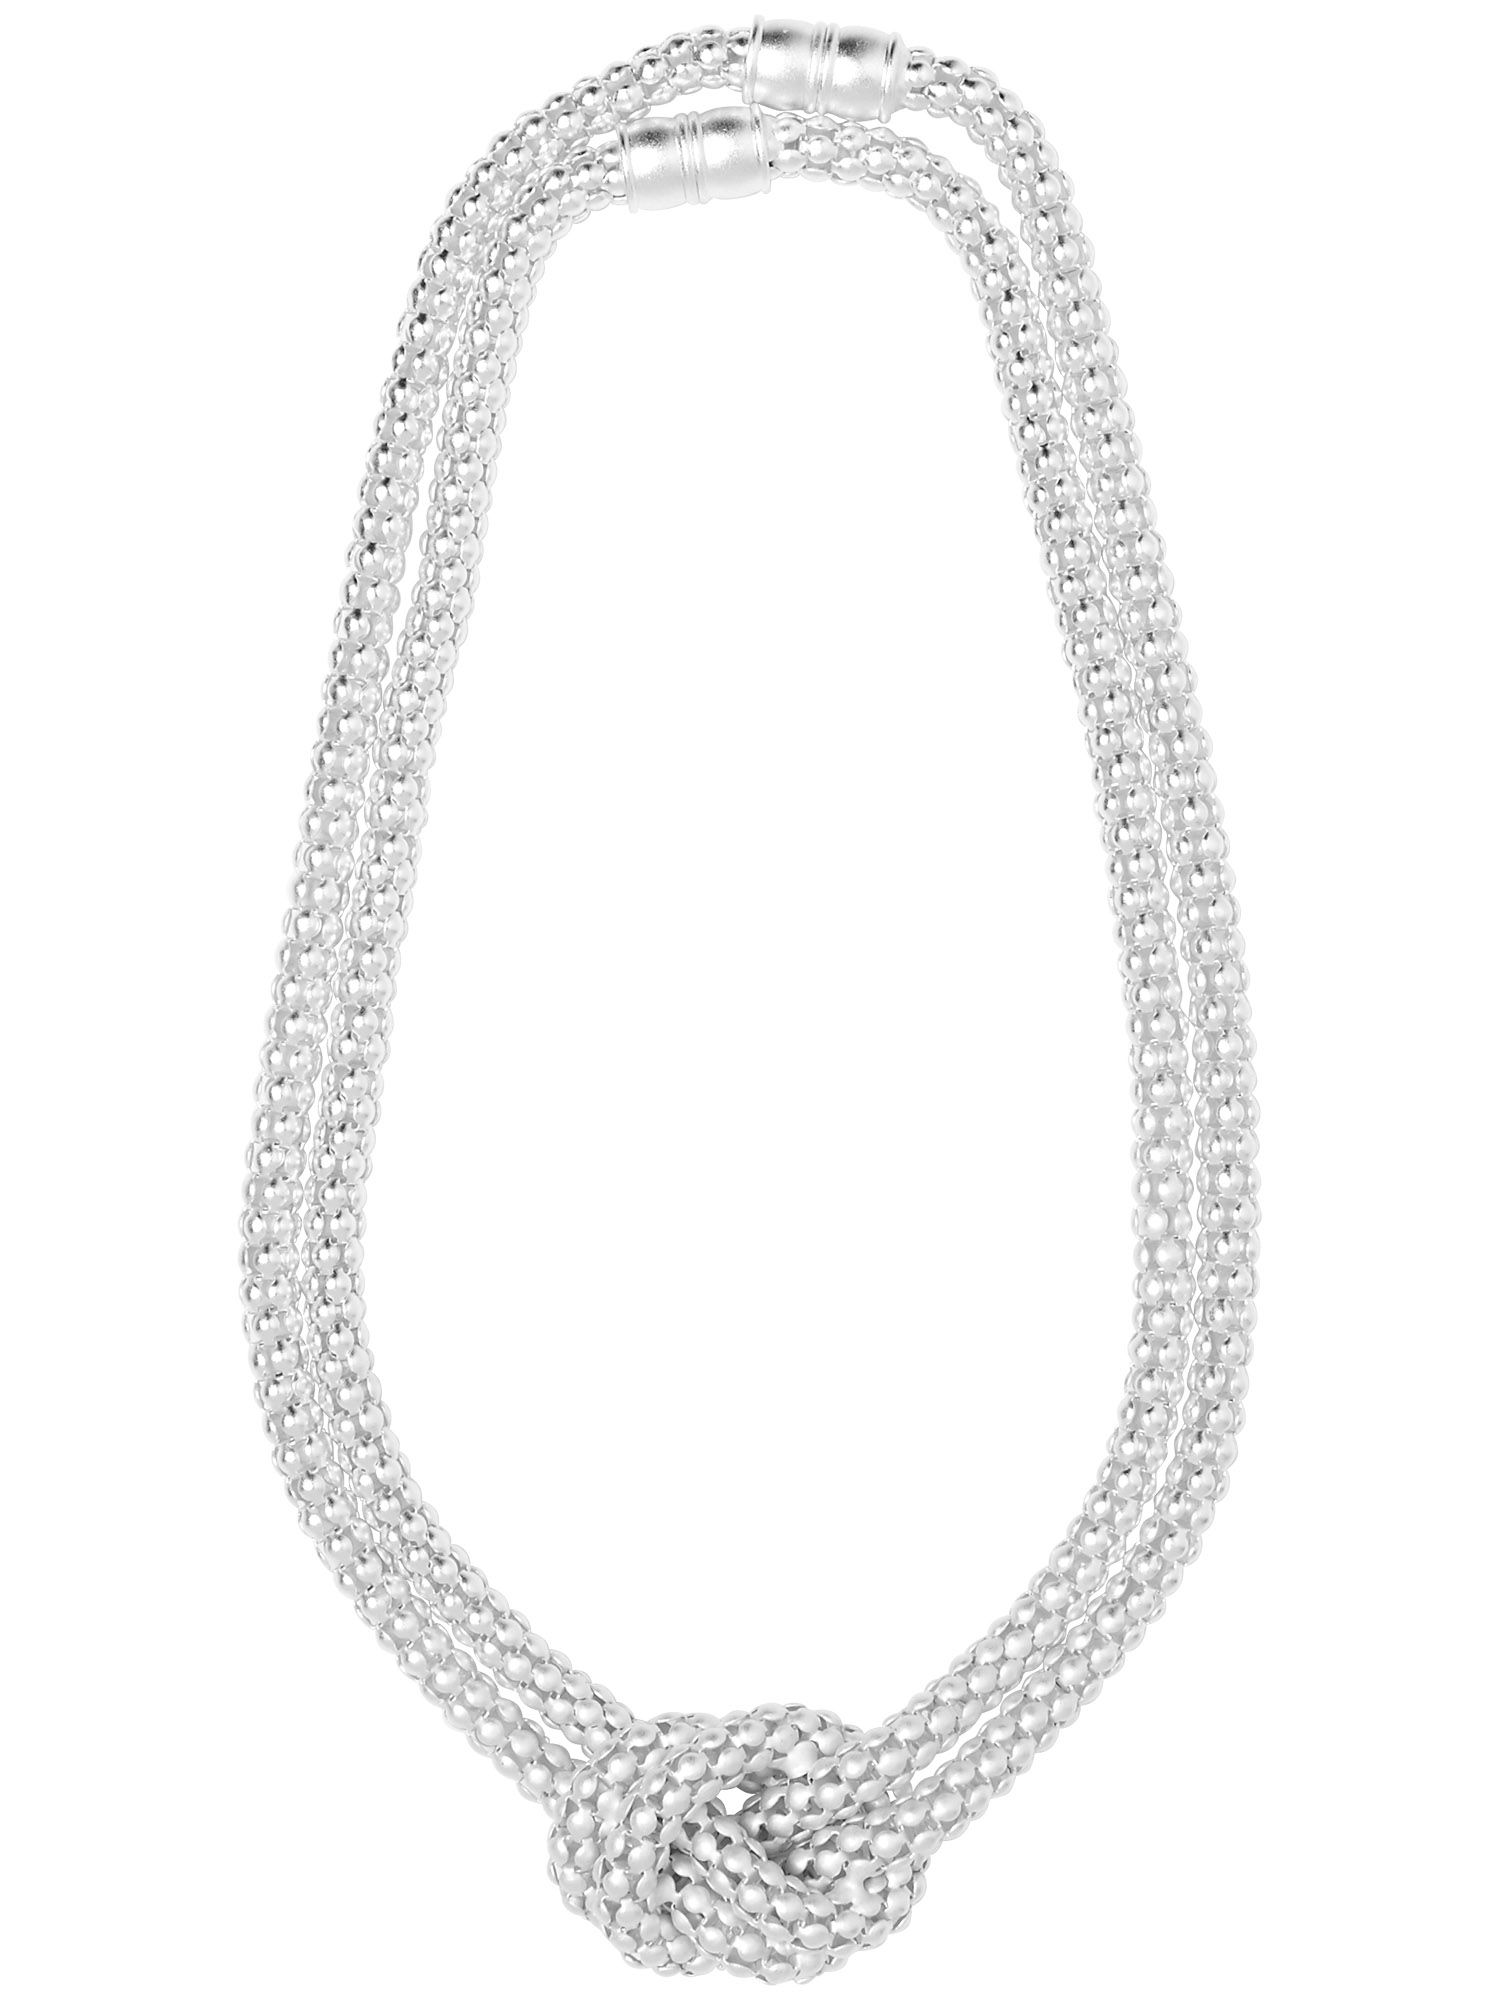 Millie knot necklace